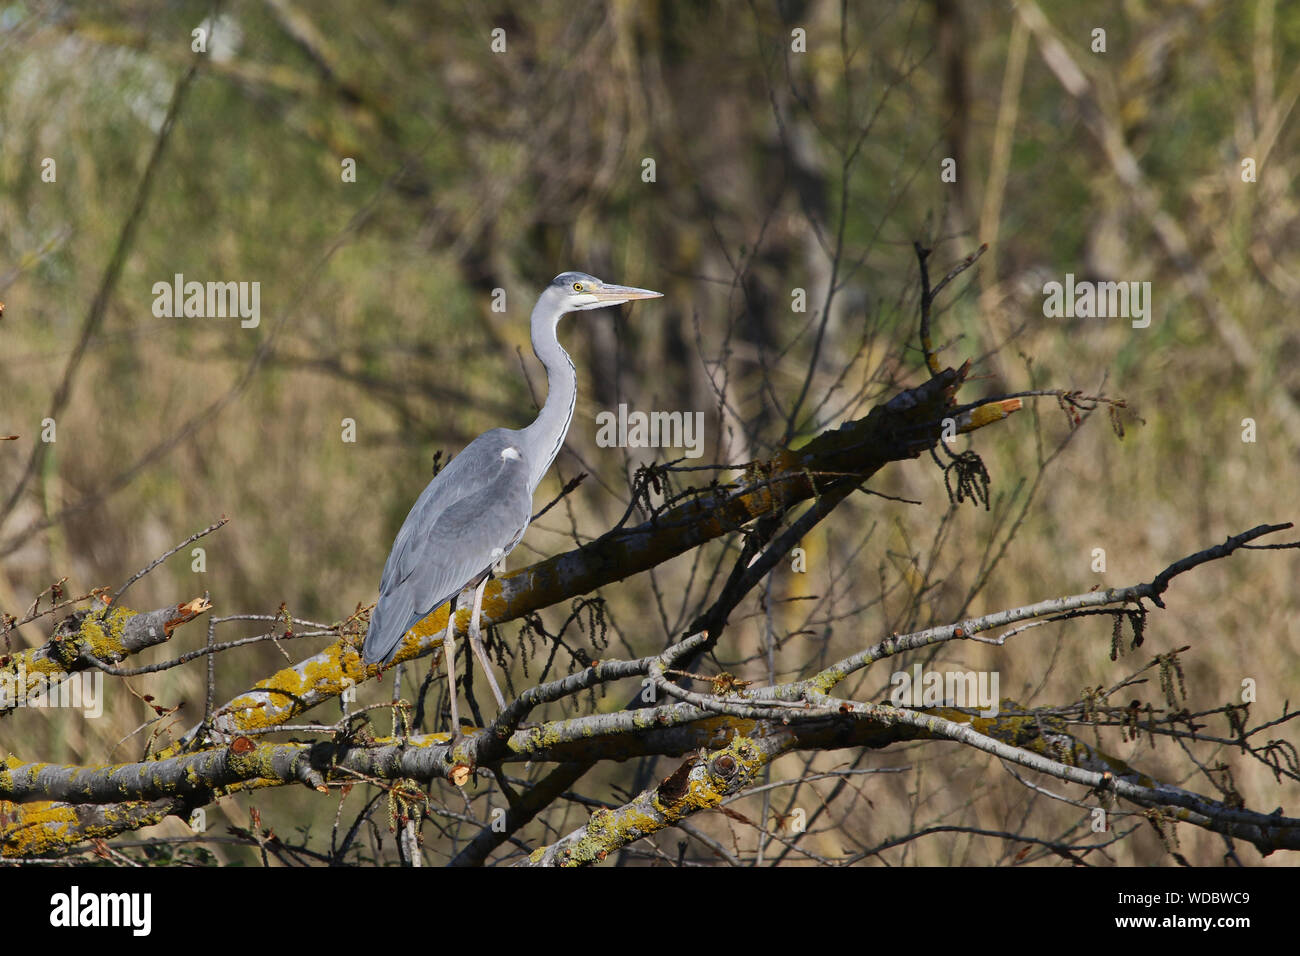 grey heron Latin ardea cinerea perched on a branch by a river in the province of Macerata, Le Marche, Italy Stock Photo